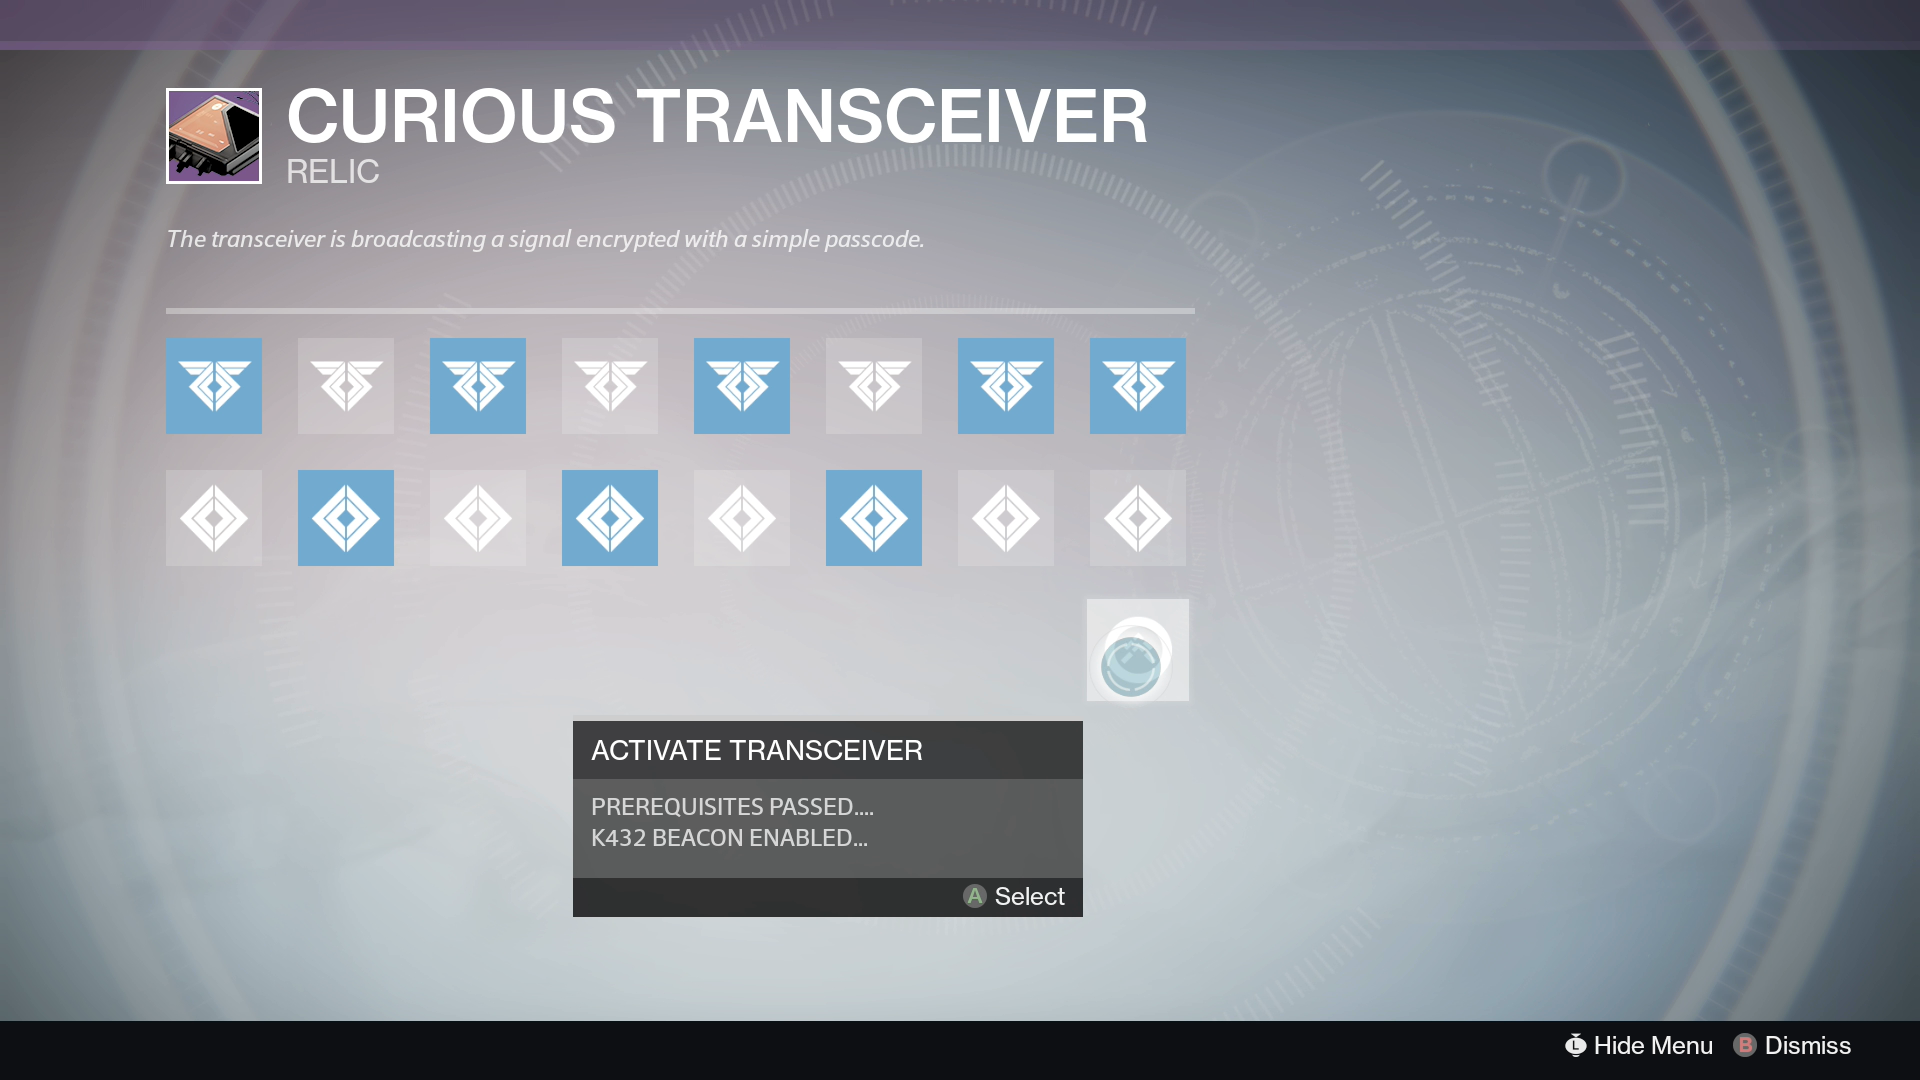 Destiny Curious Transceiver Code 4